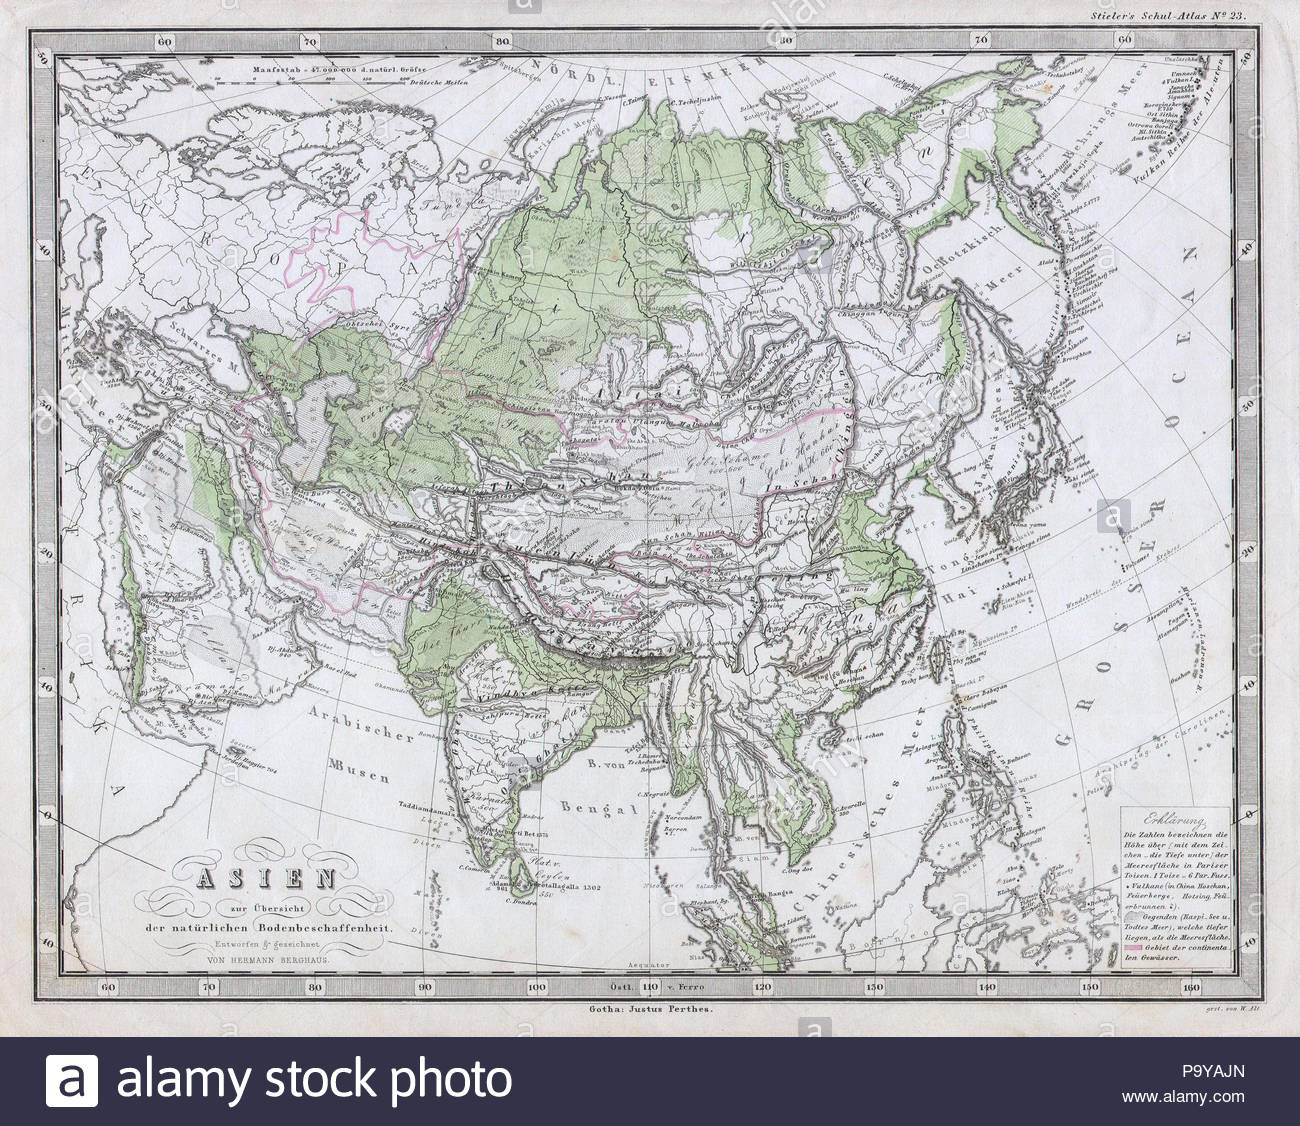 Map Of Just Asia.1862 Perthes Physical Map Of Asia Stock Photo 212657389 Alamy